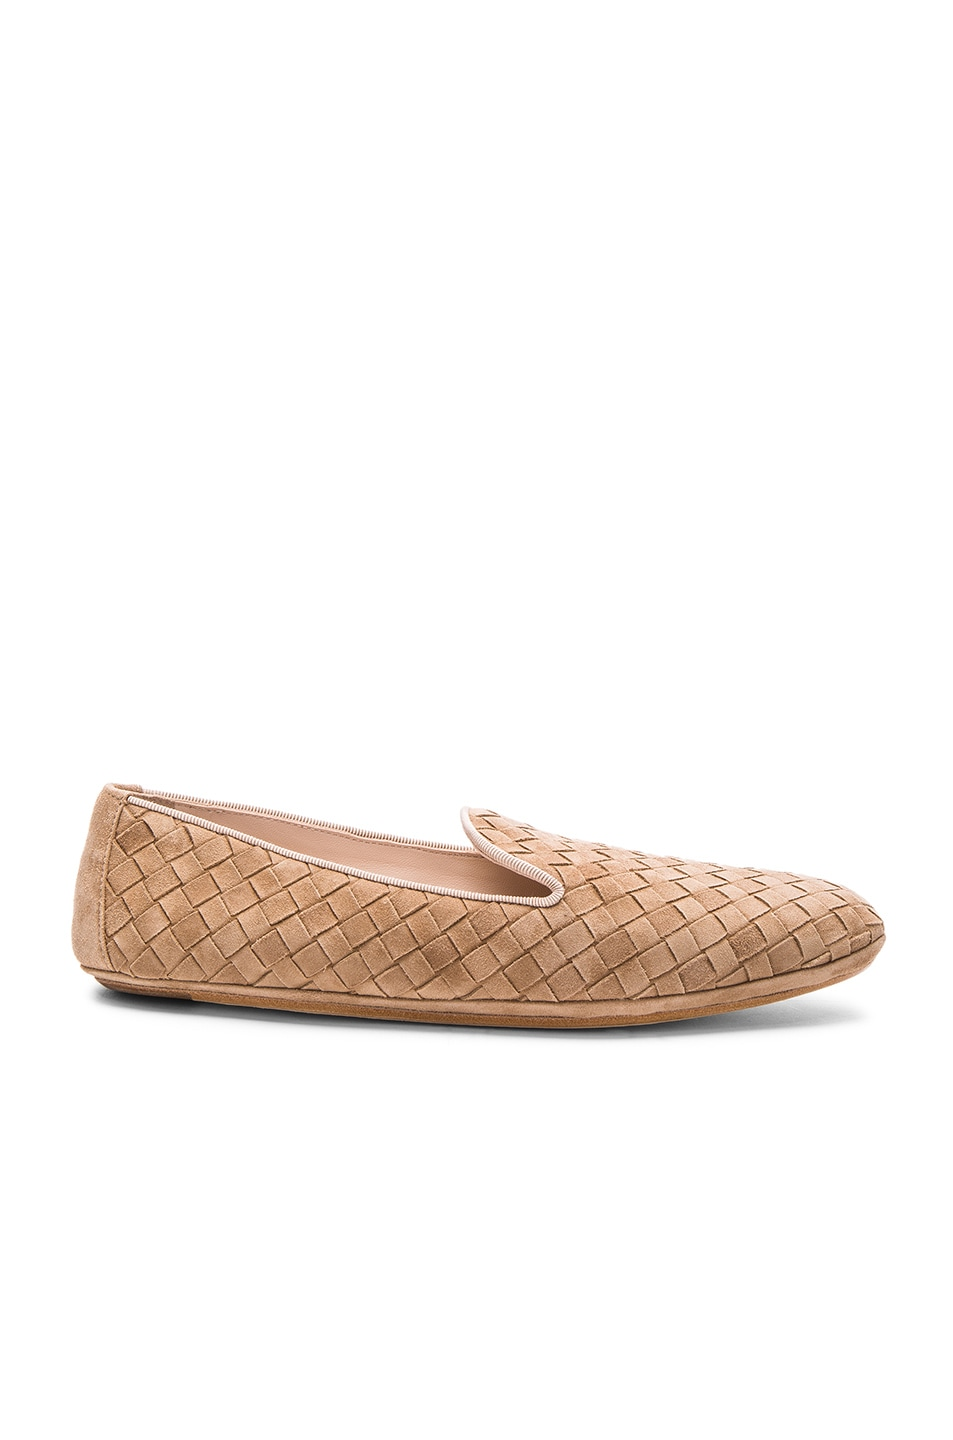 Image 1 of Bottega Veneta Woven Suede Flats in Camel